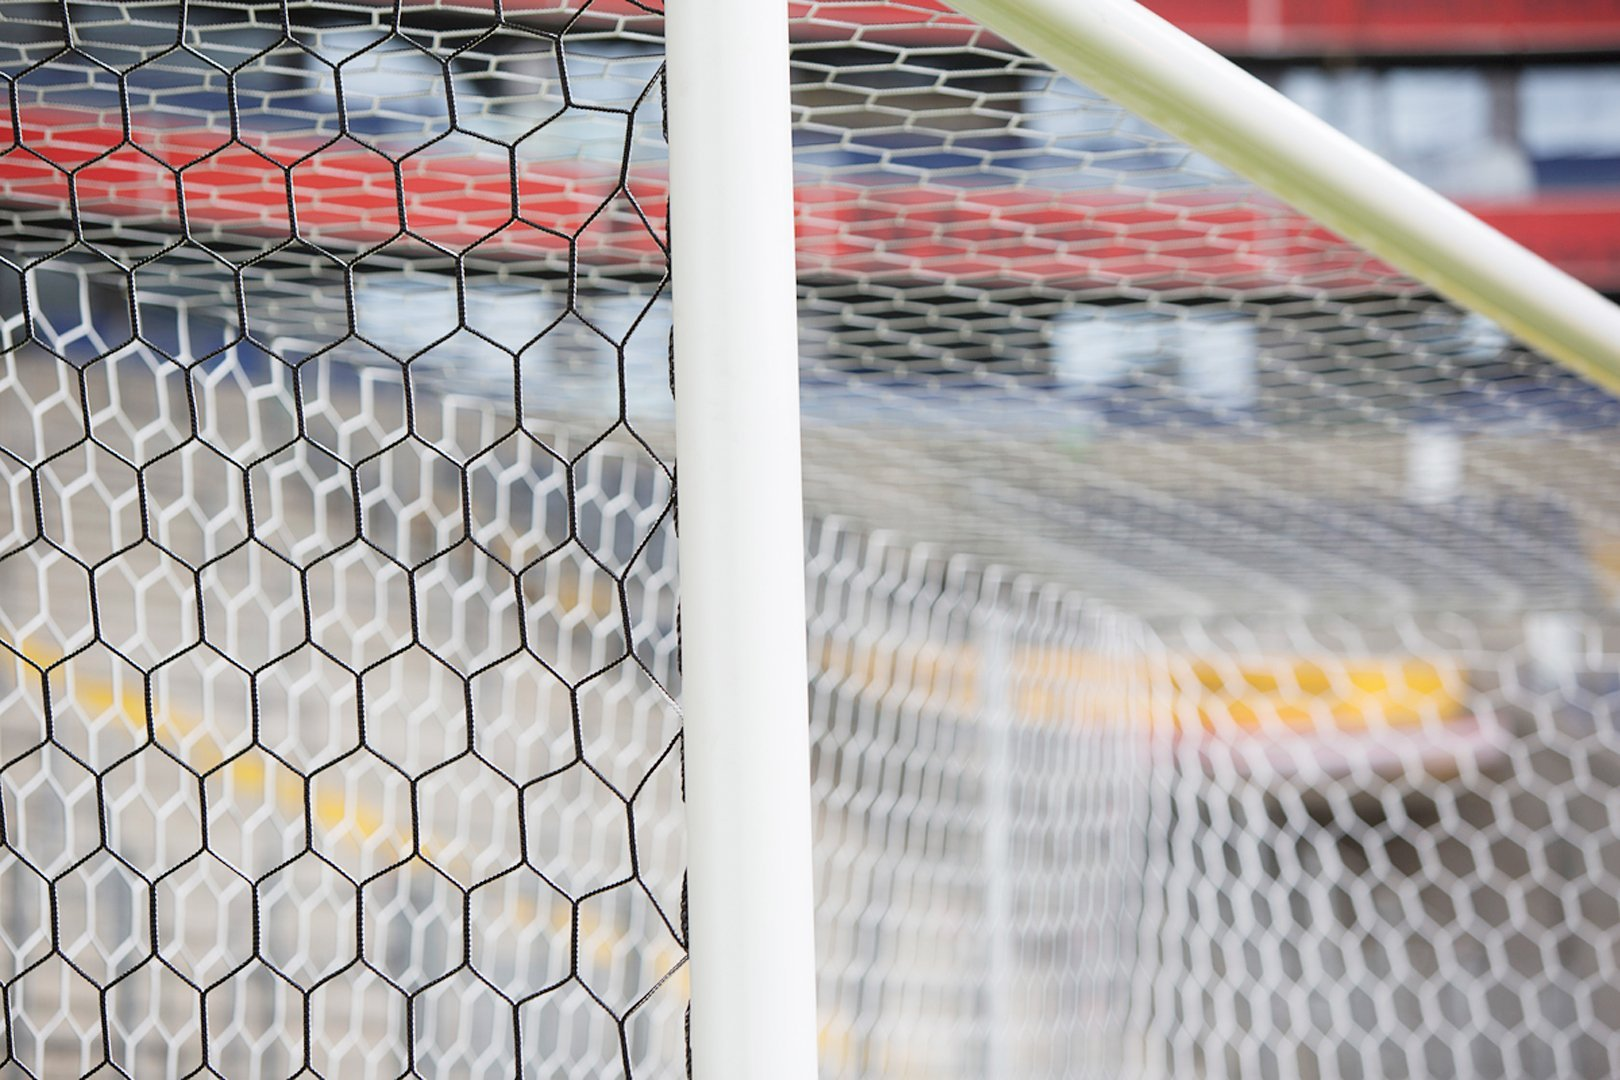 Full size football goal net hexagonal mesh 24' x 8'